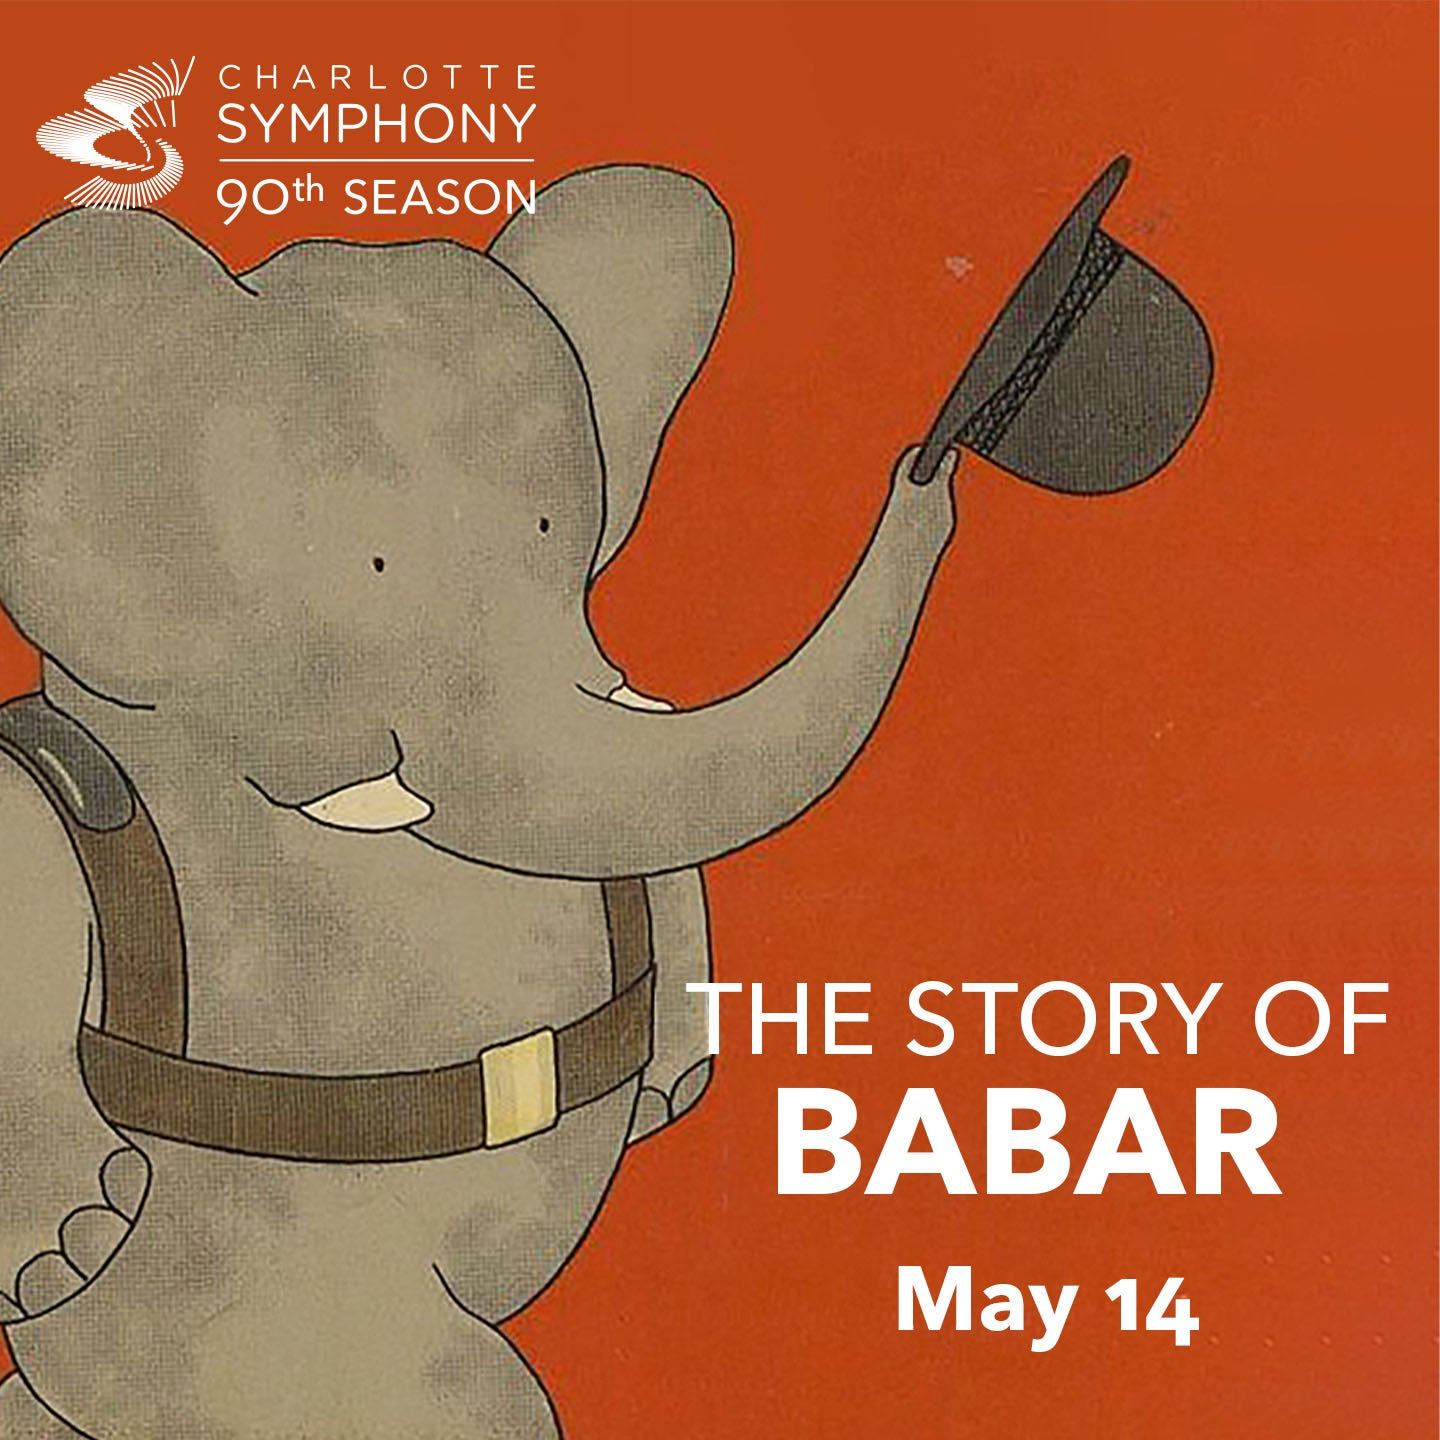 Charlotte Symphony Orchestra presents The Story of Babar